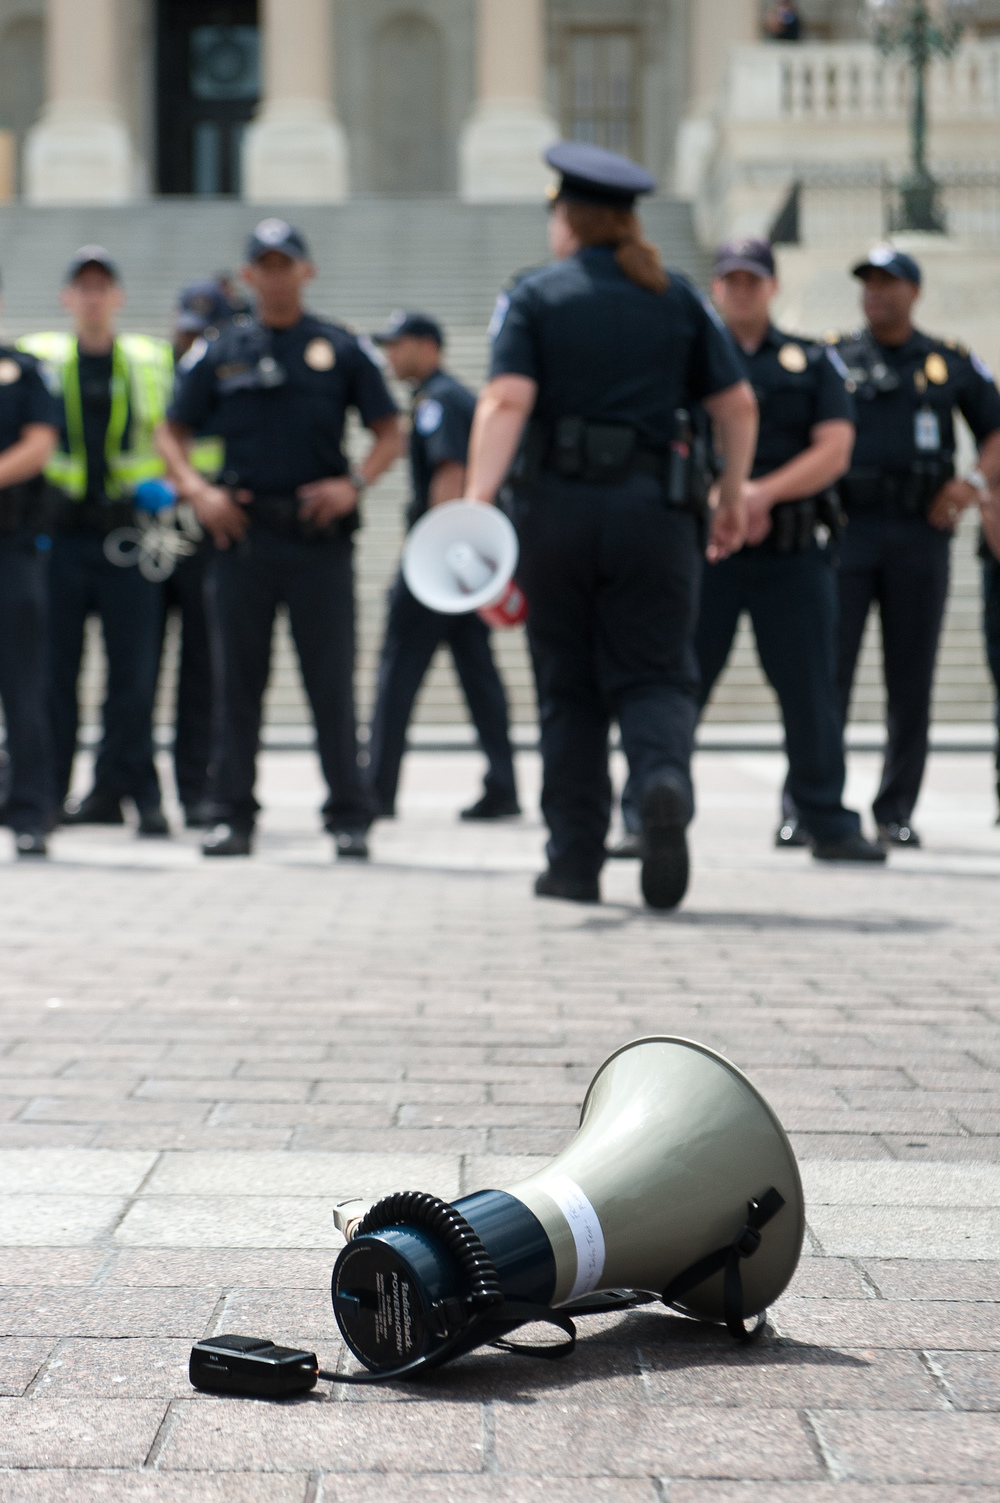 Immediately after arrests were made during an Occupy Congress action on the Eastern approach to the US Capitol. (May 15th, 2012)